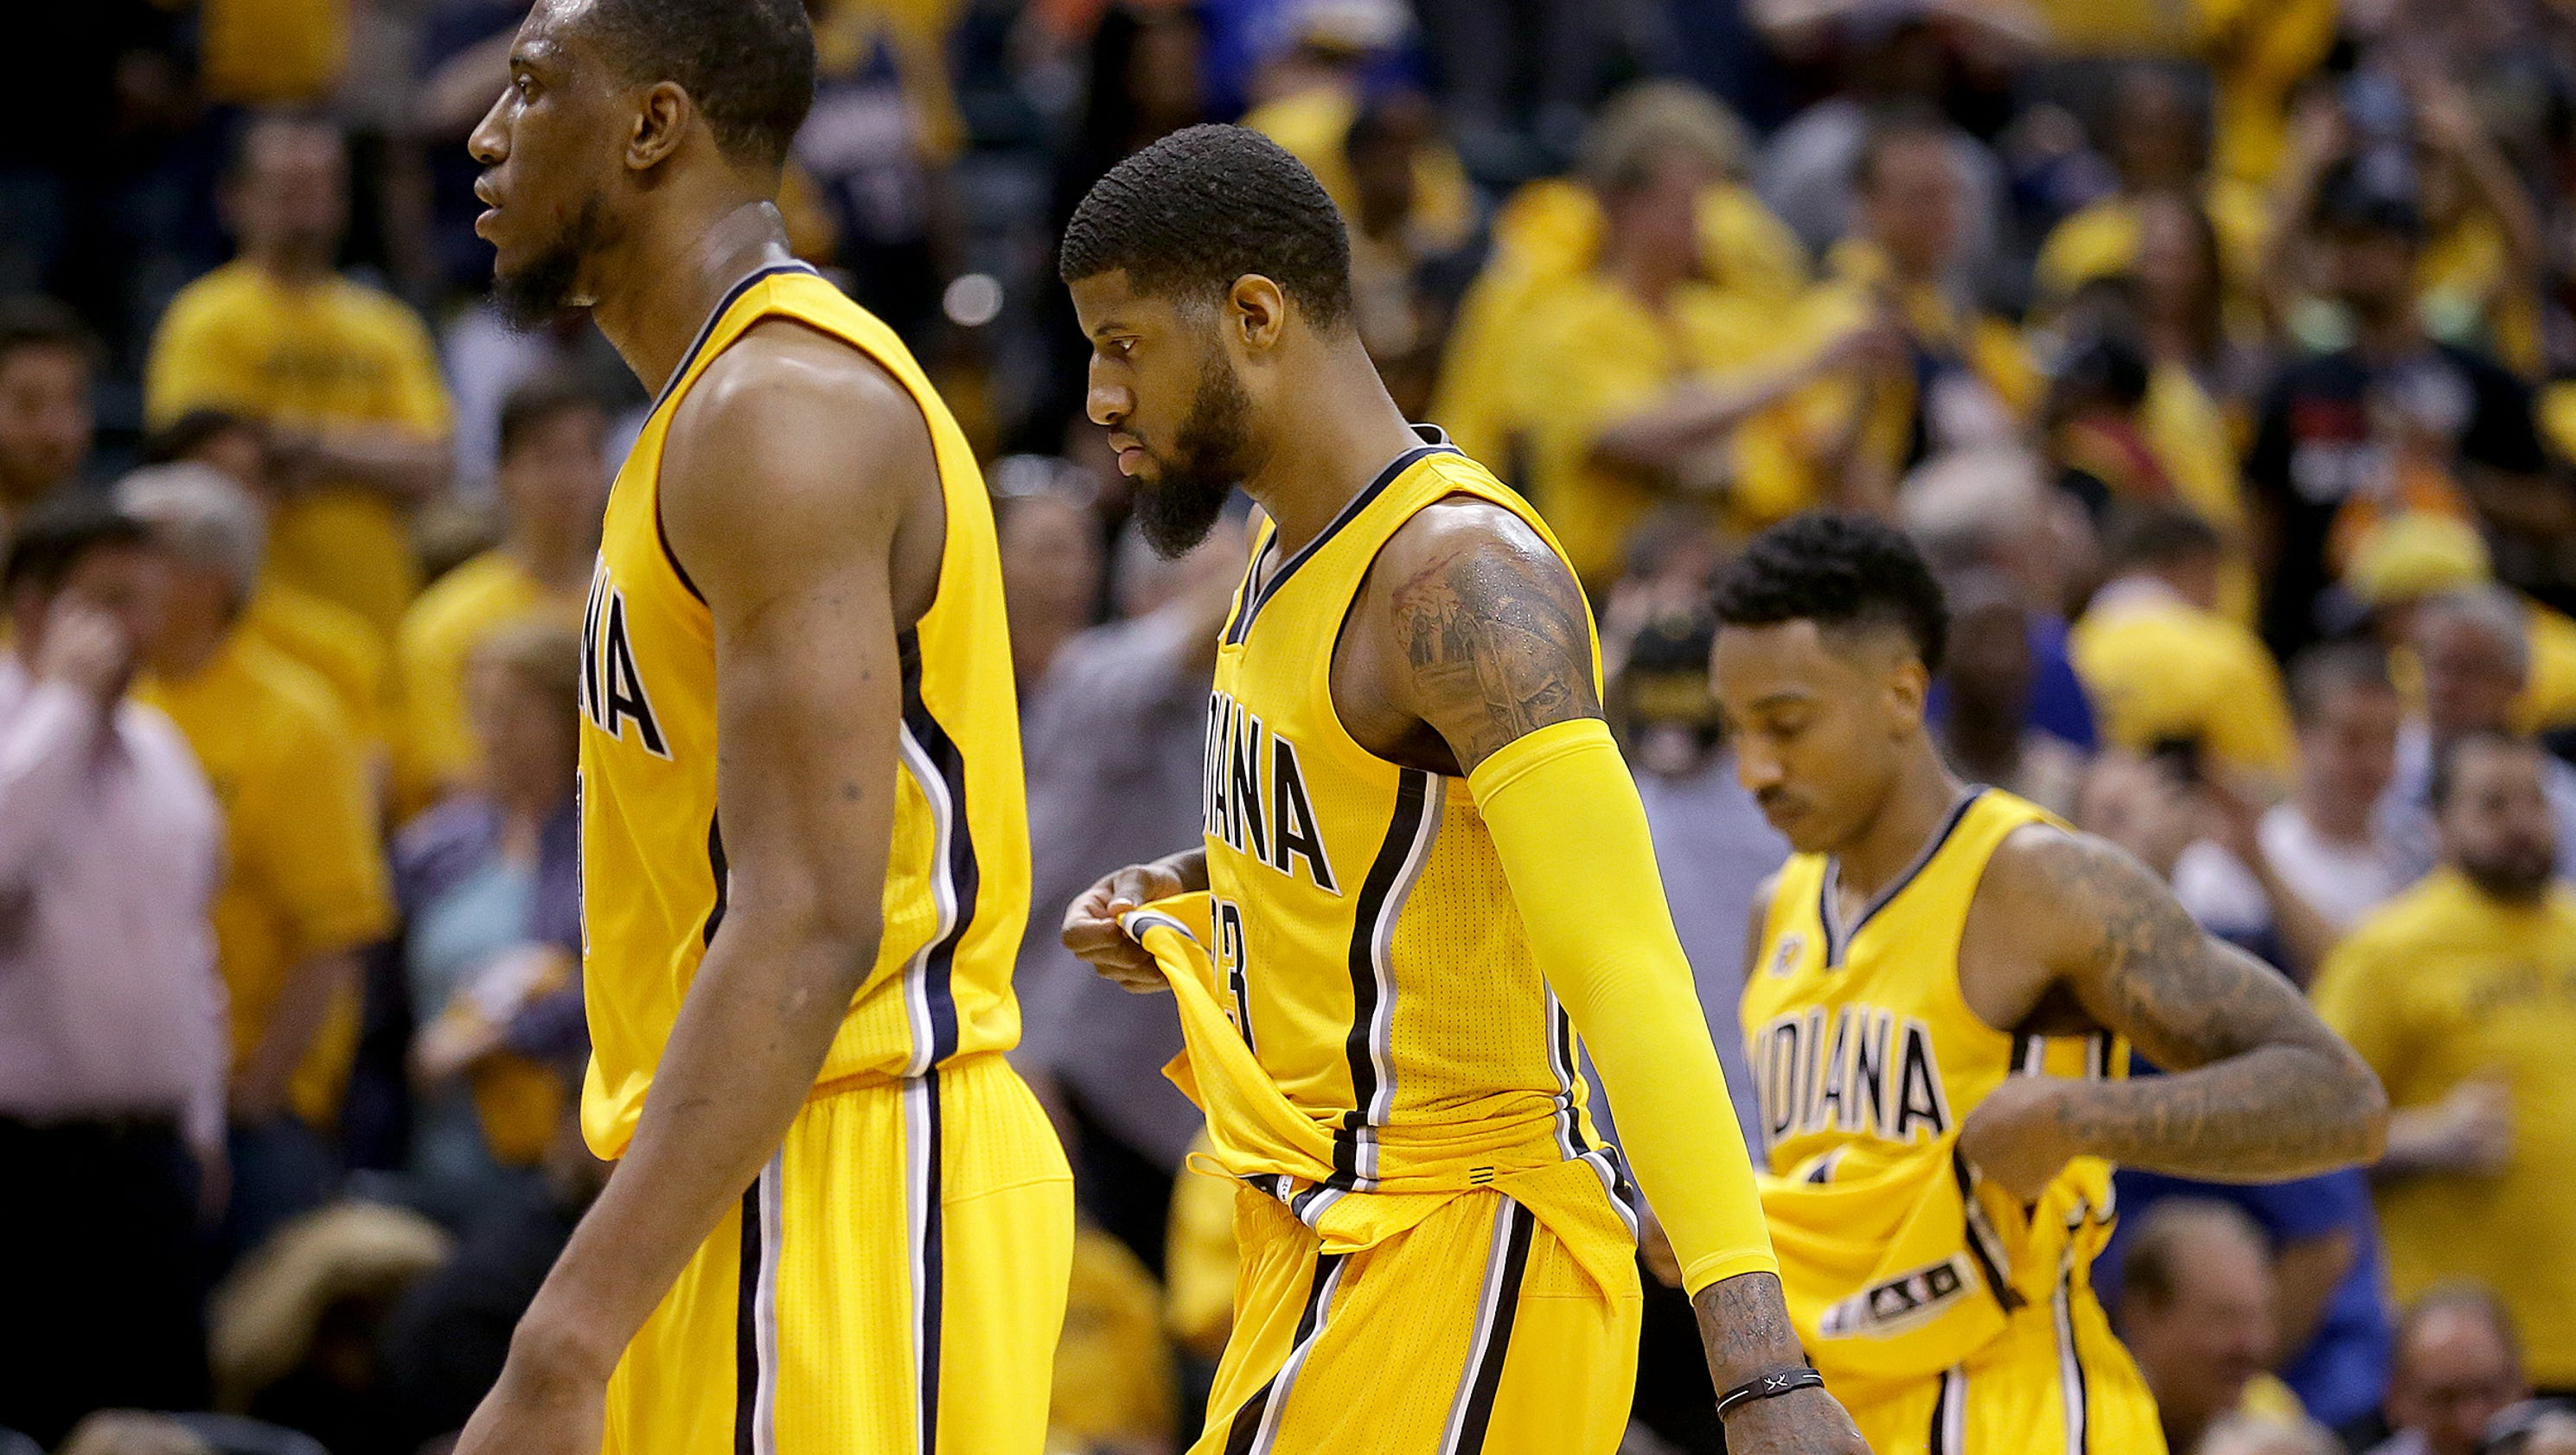 pacers vs cavaliers - photo #37